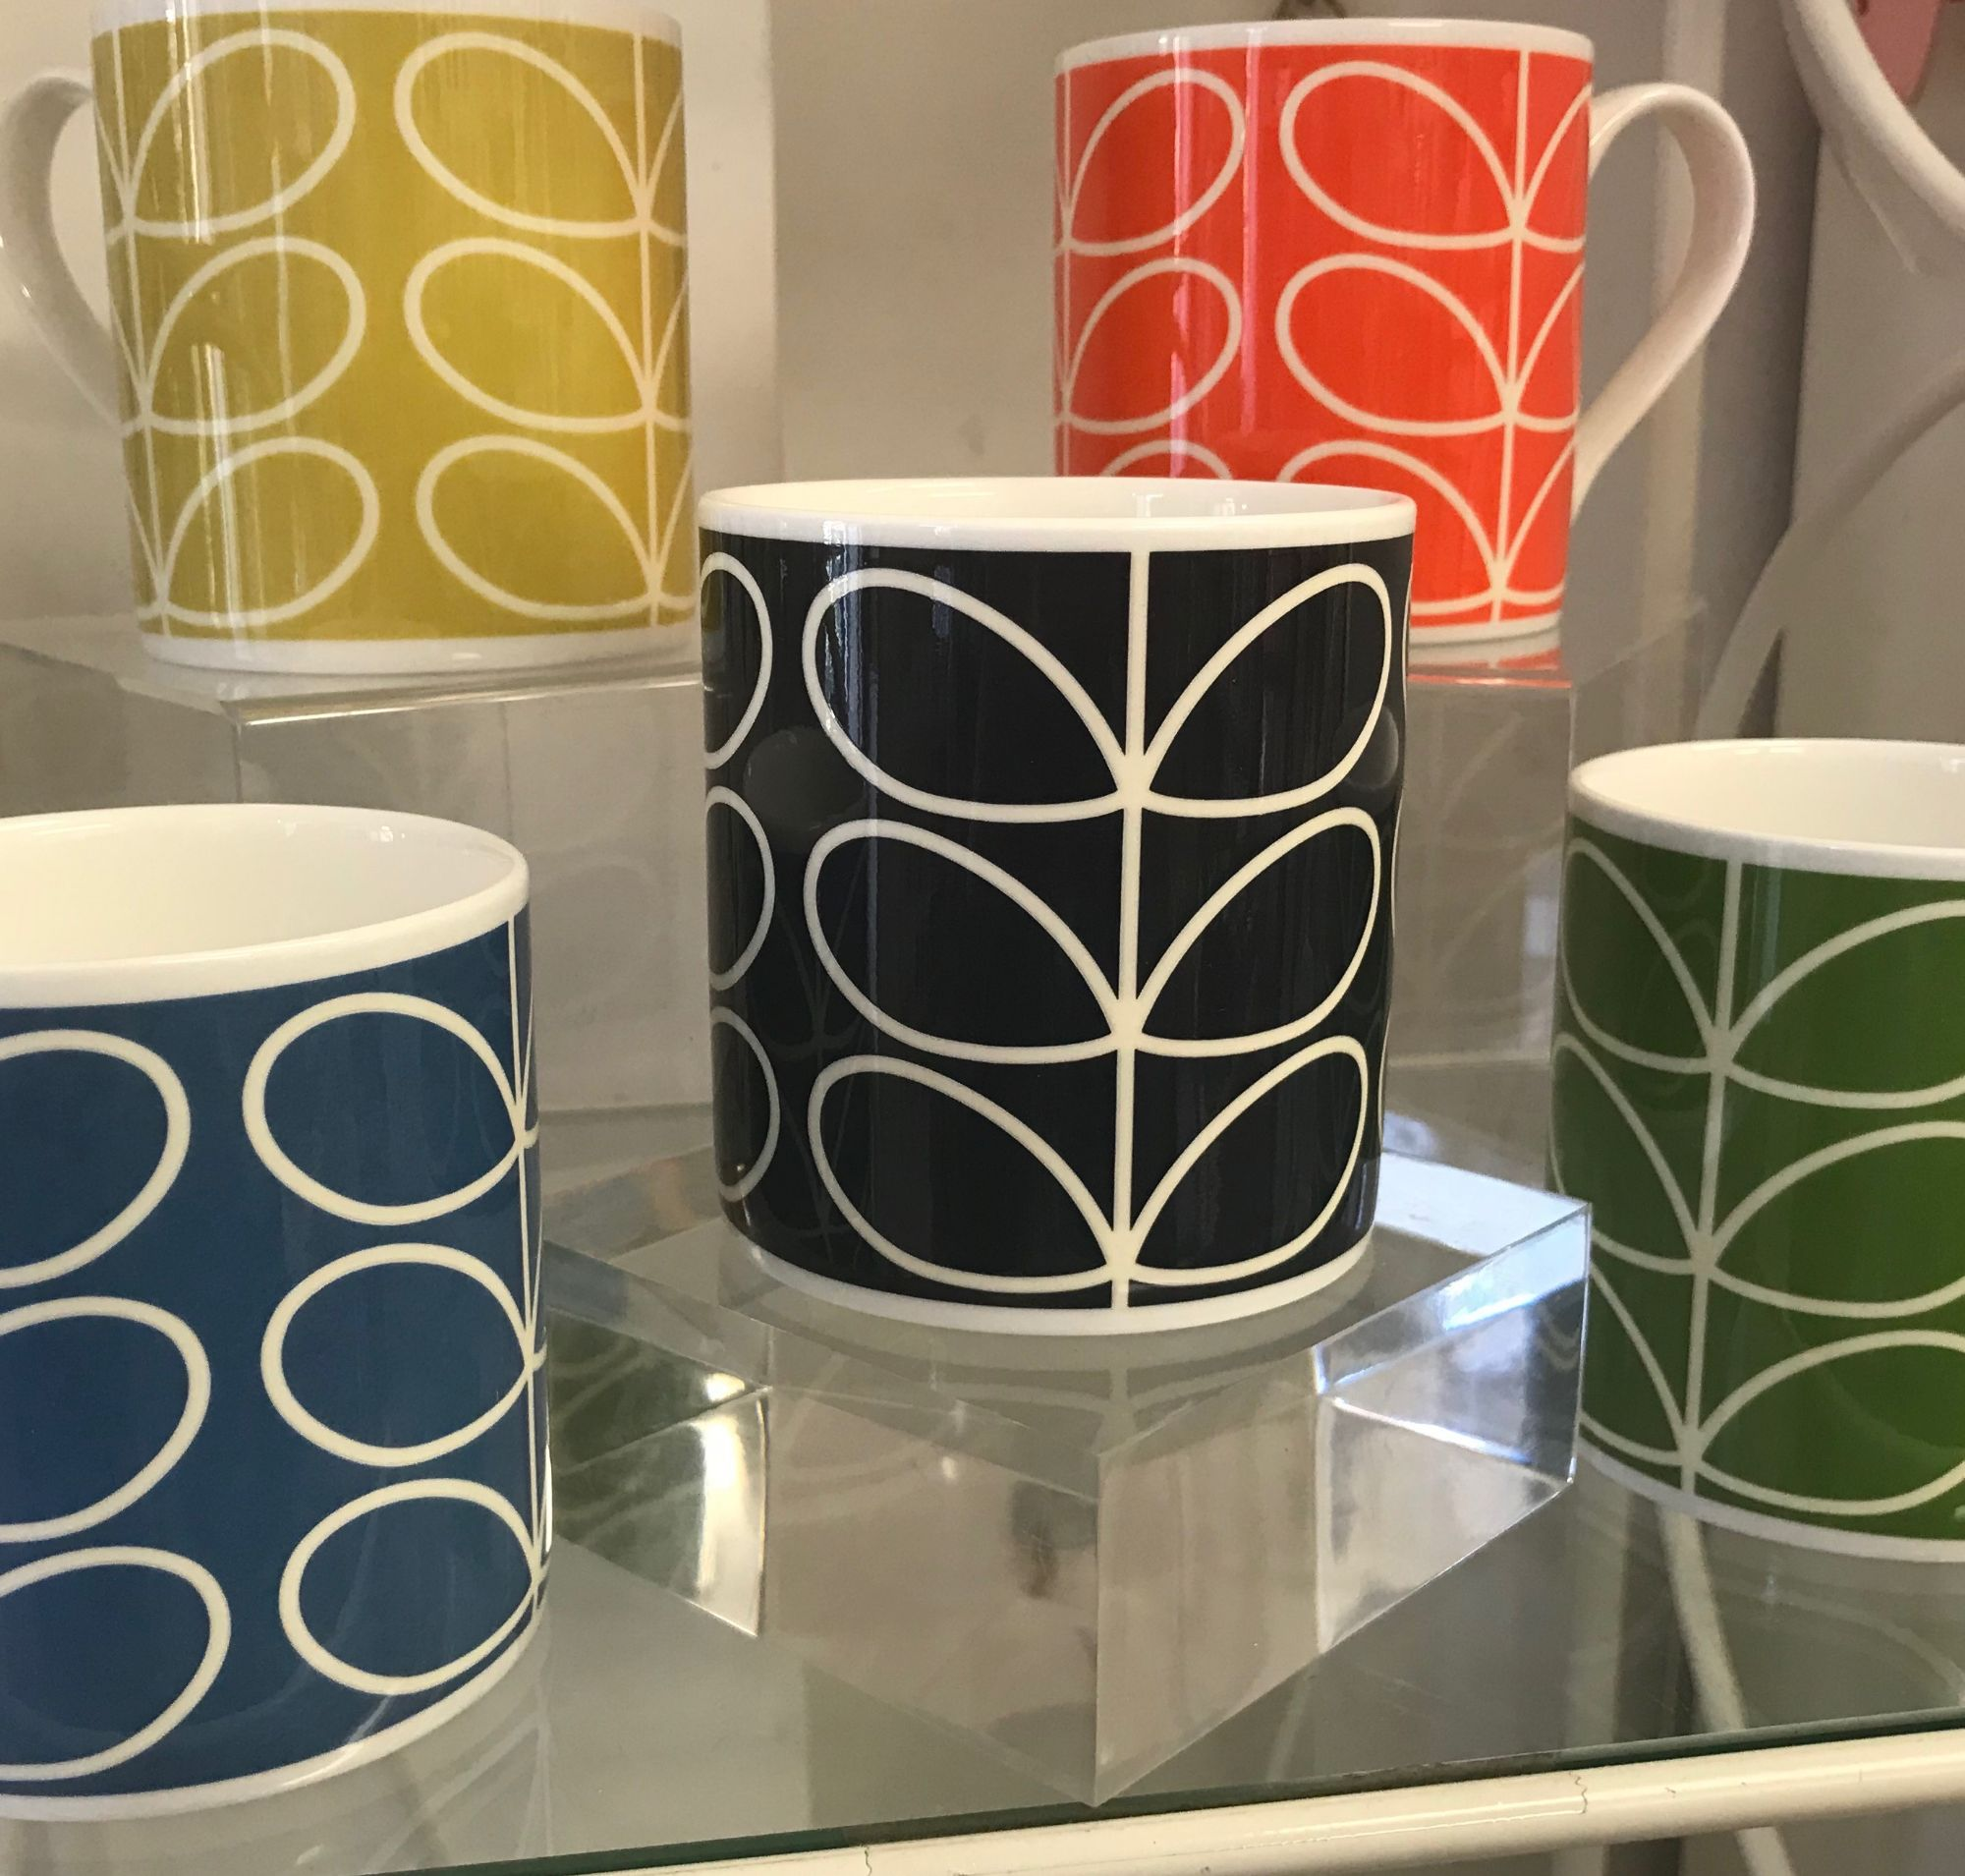 McLaggan Smith's Orla Kiely mugs